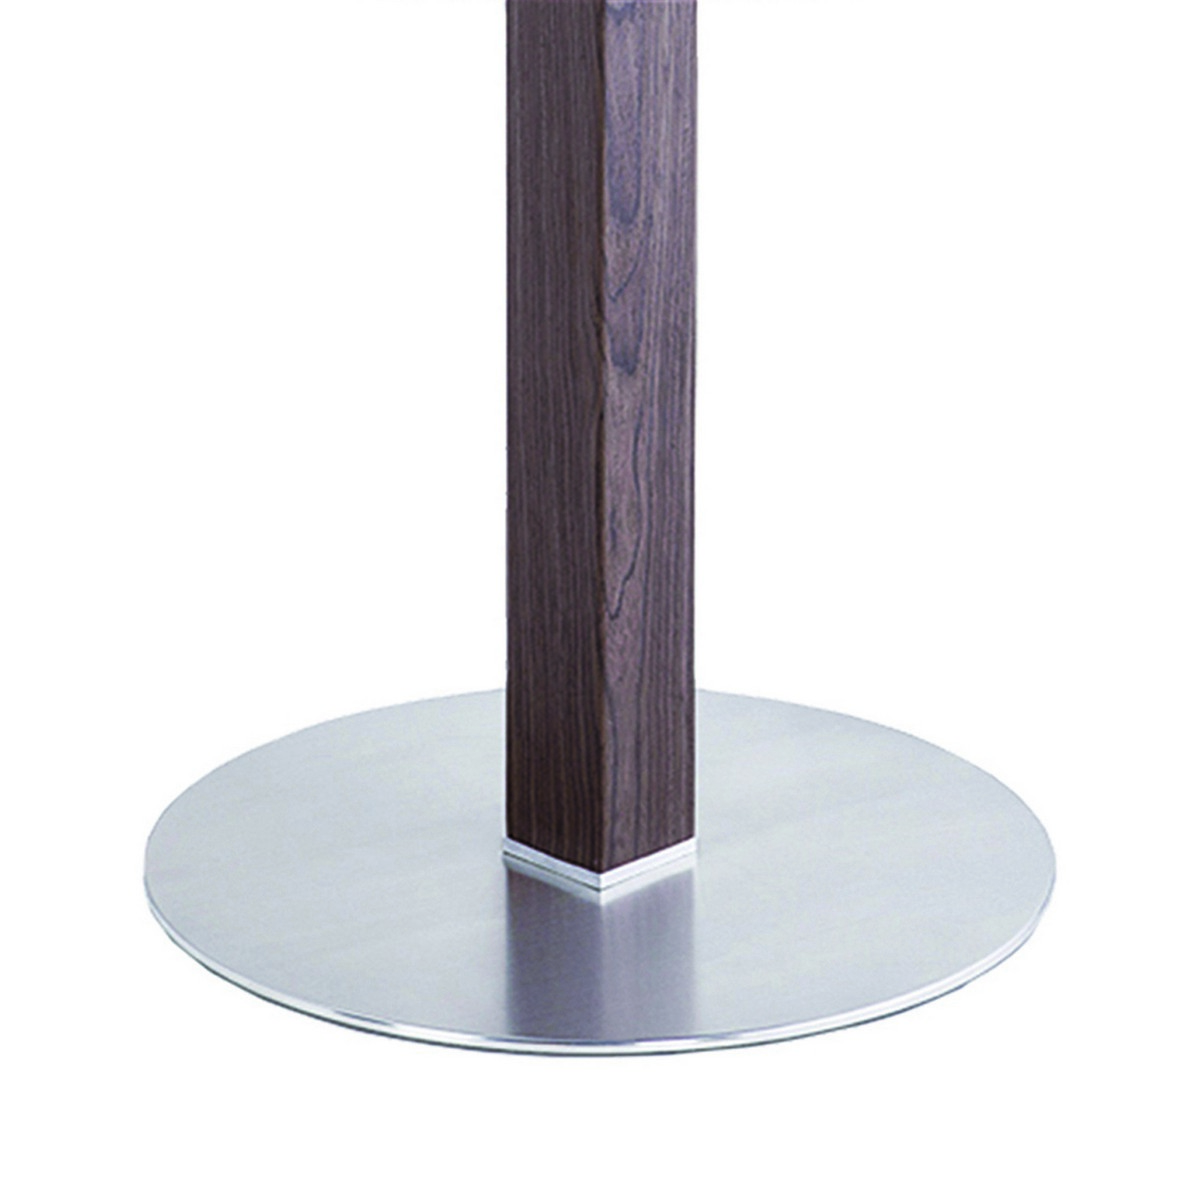 Armen Living Cafe Brushed Stainless Steel Dining Table with Clear Glass